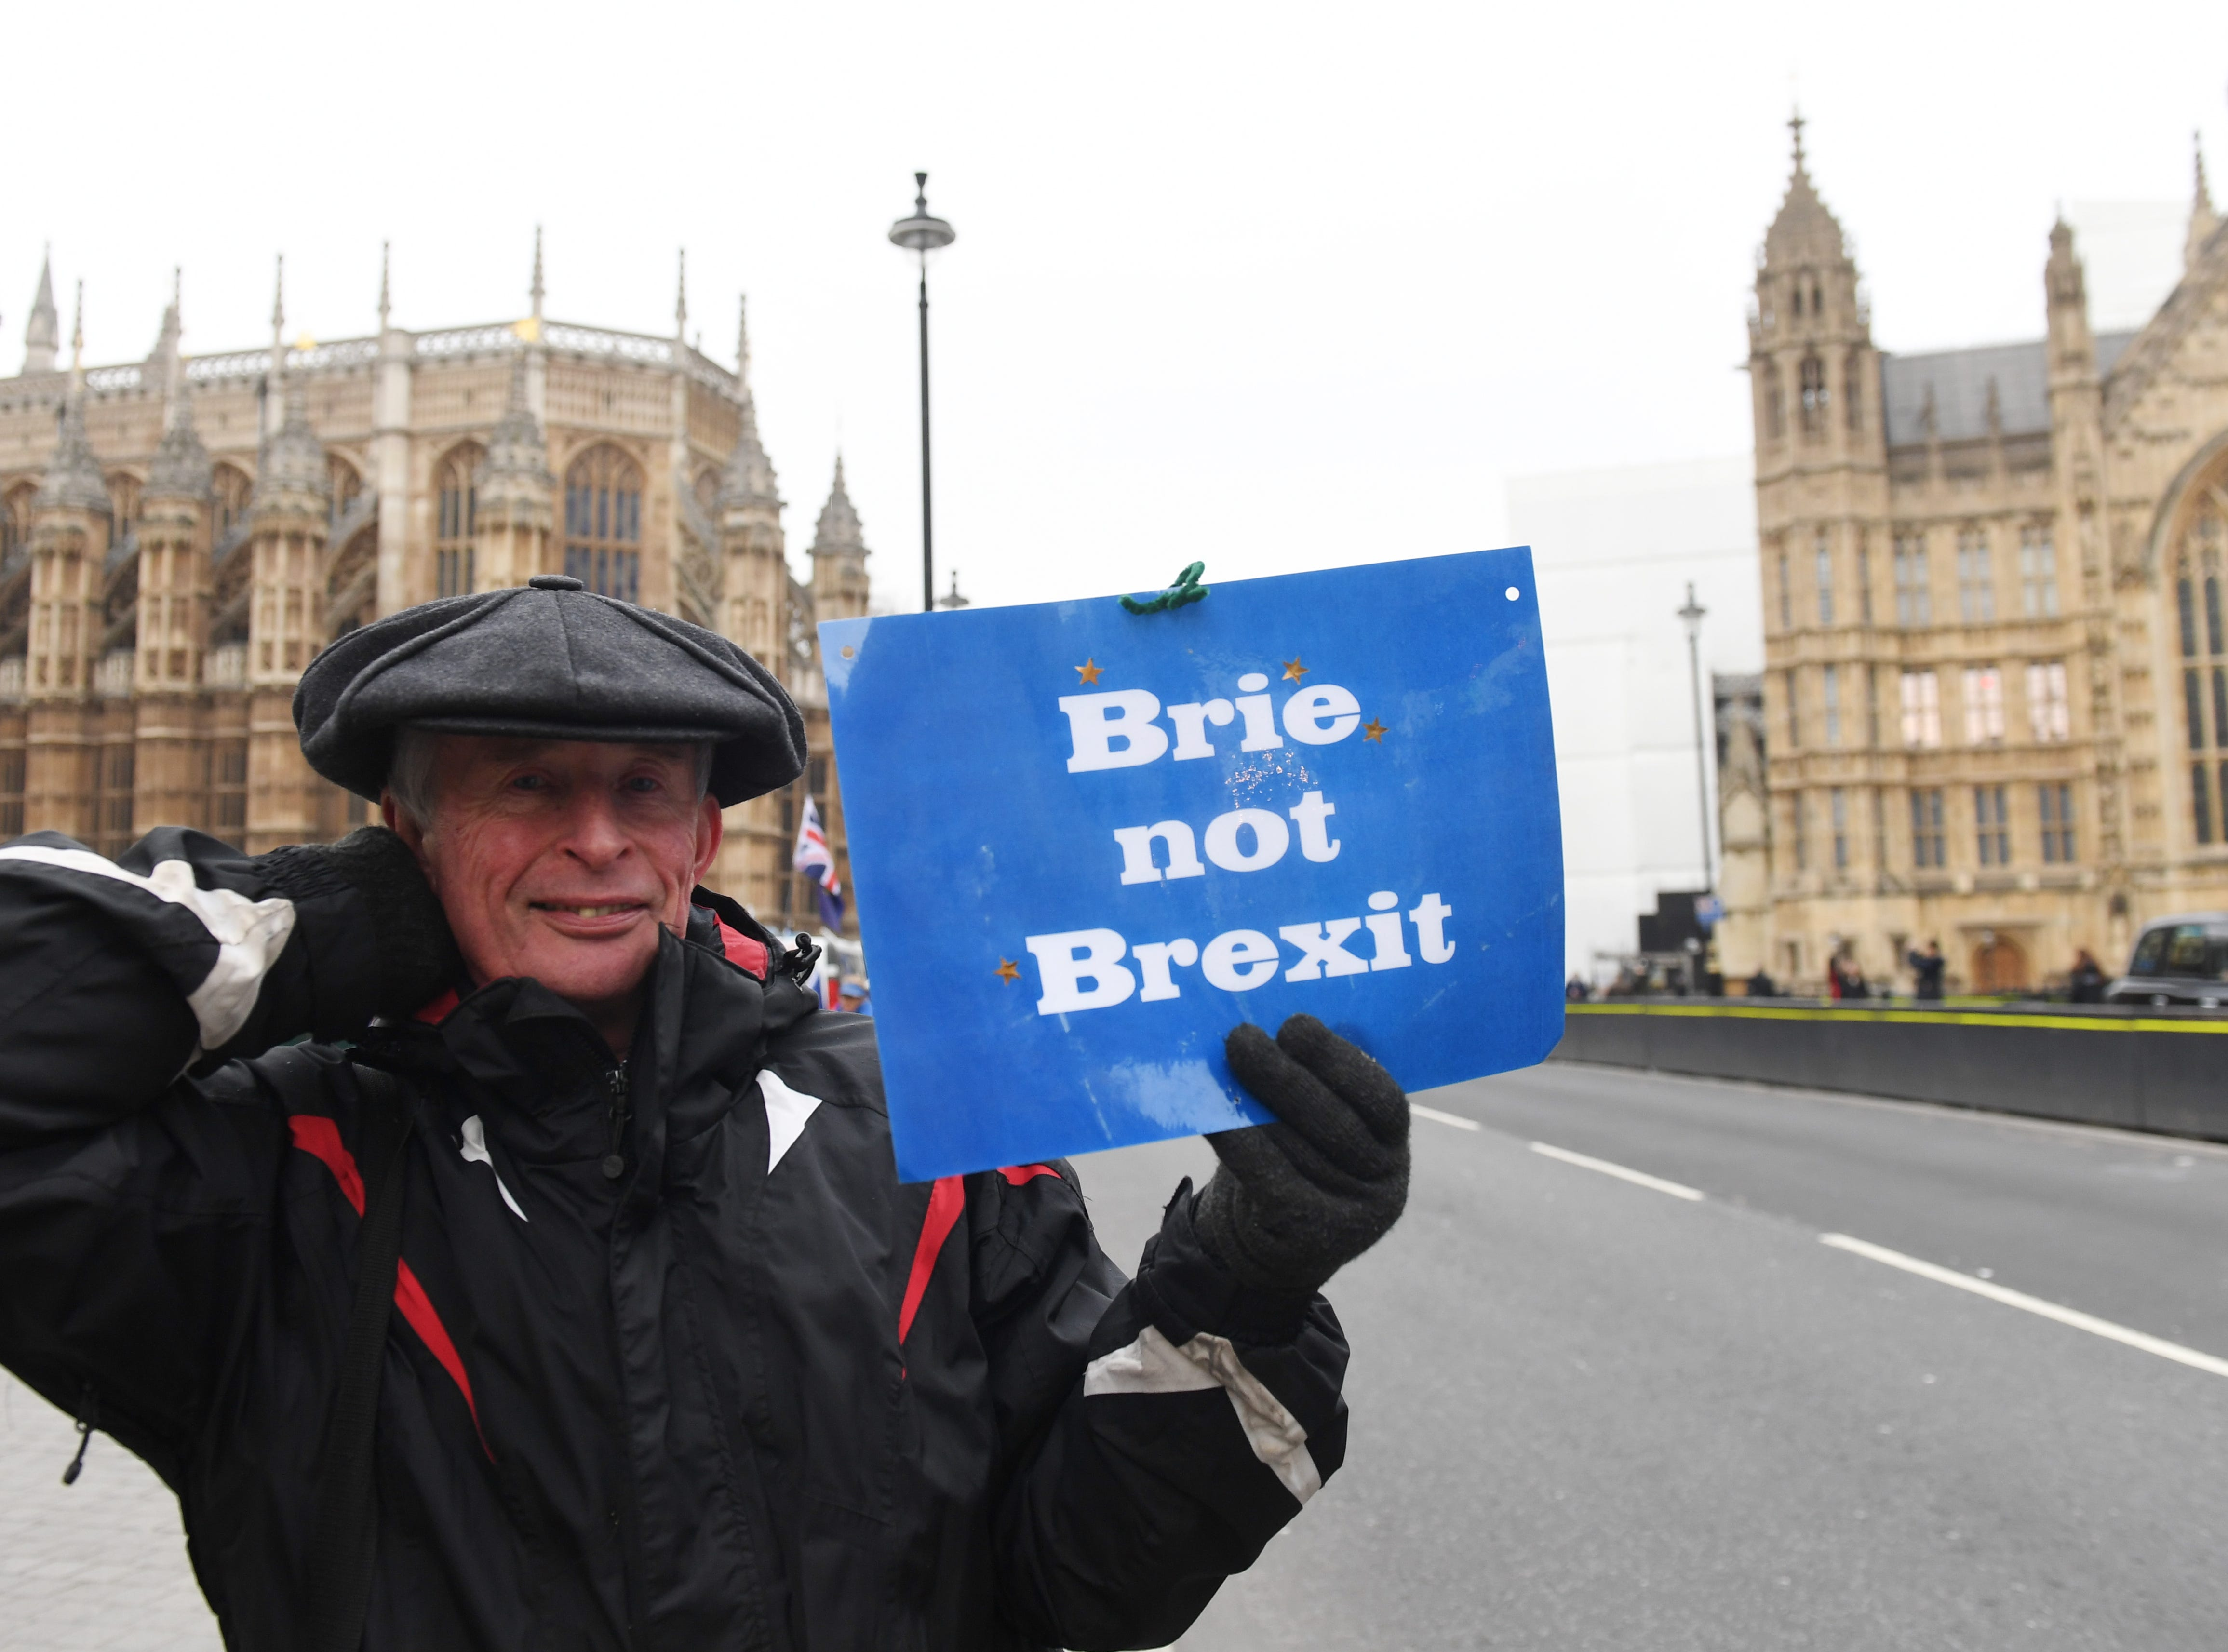 A Pro EU supporter displays a sign 'Brie not Brexit' outside the Houses of Parliament in Westminster in London, Britain on Jan. 10, 2019.